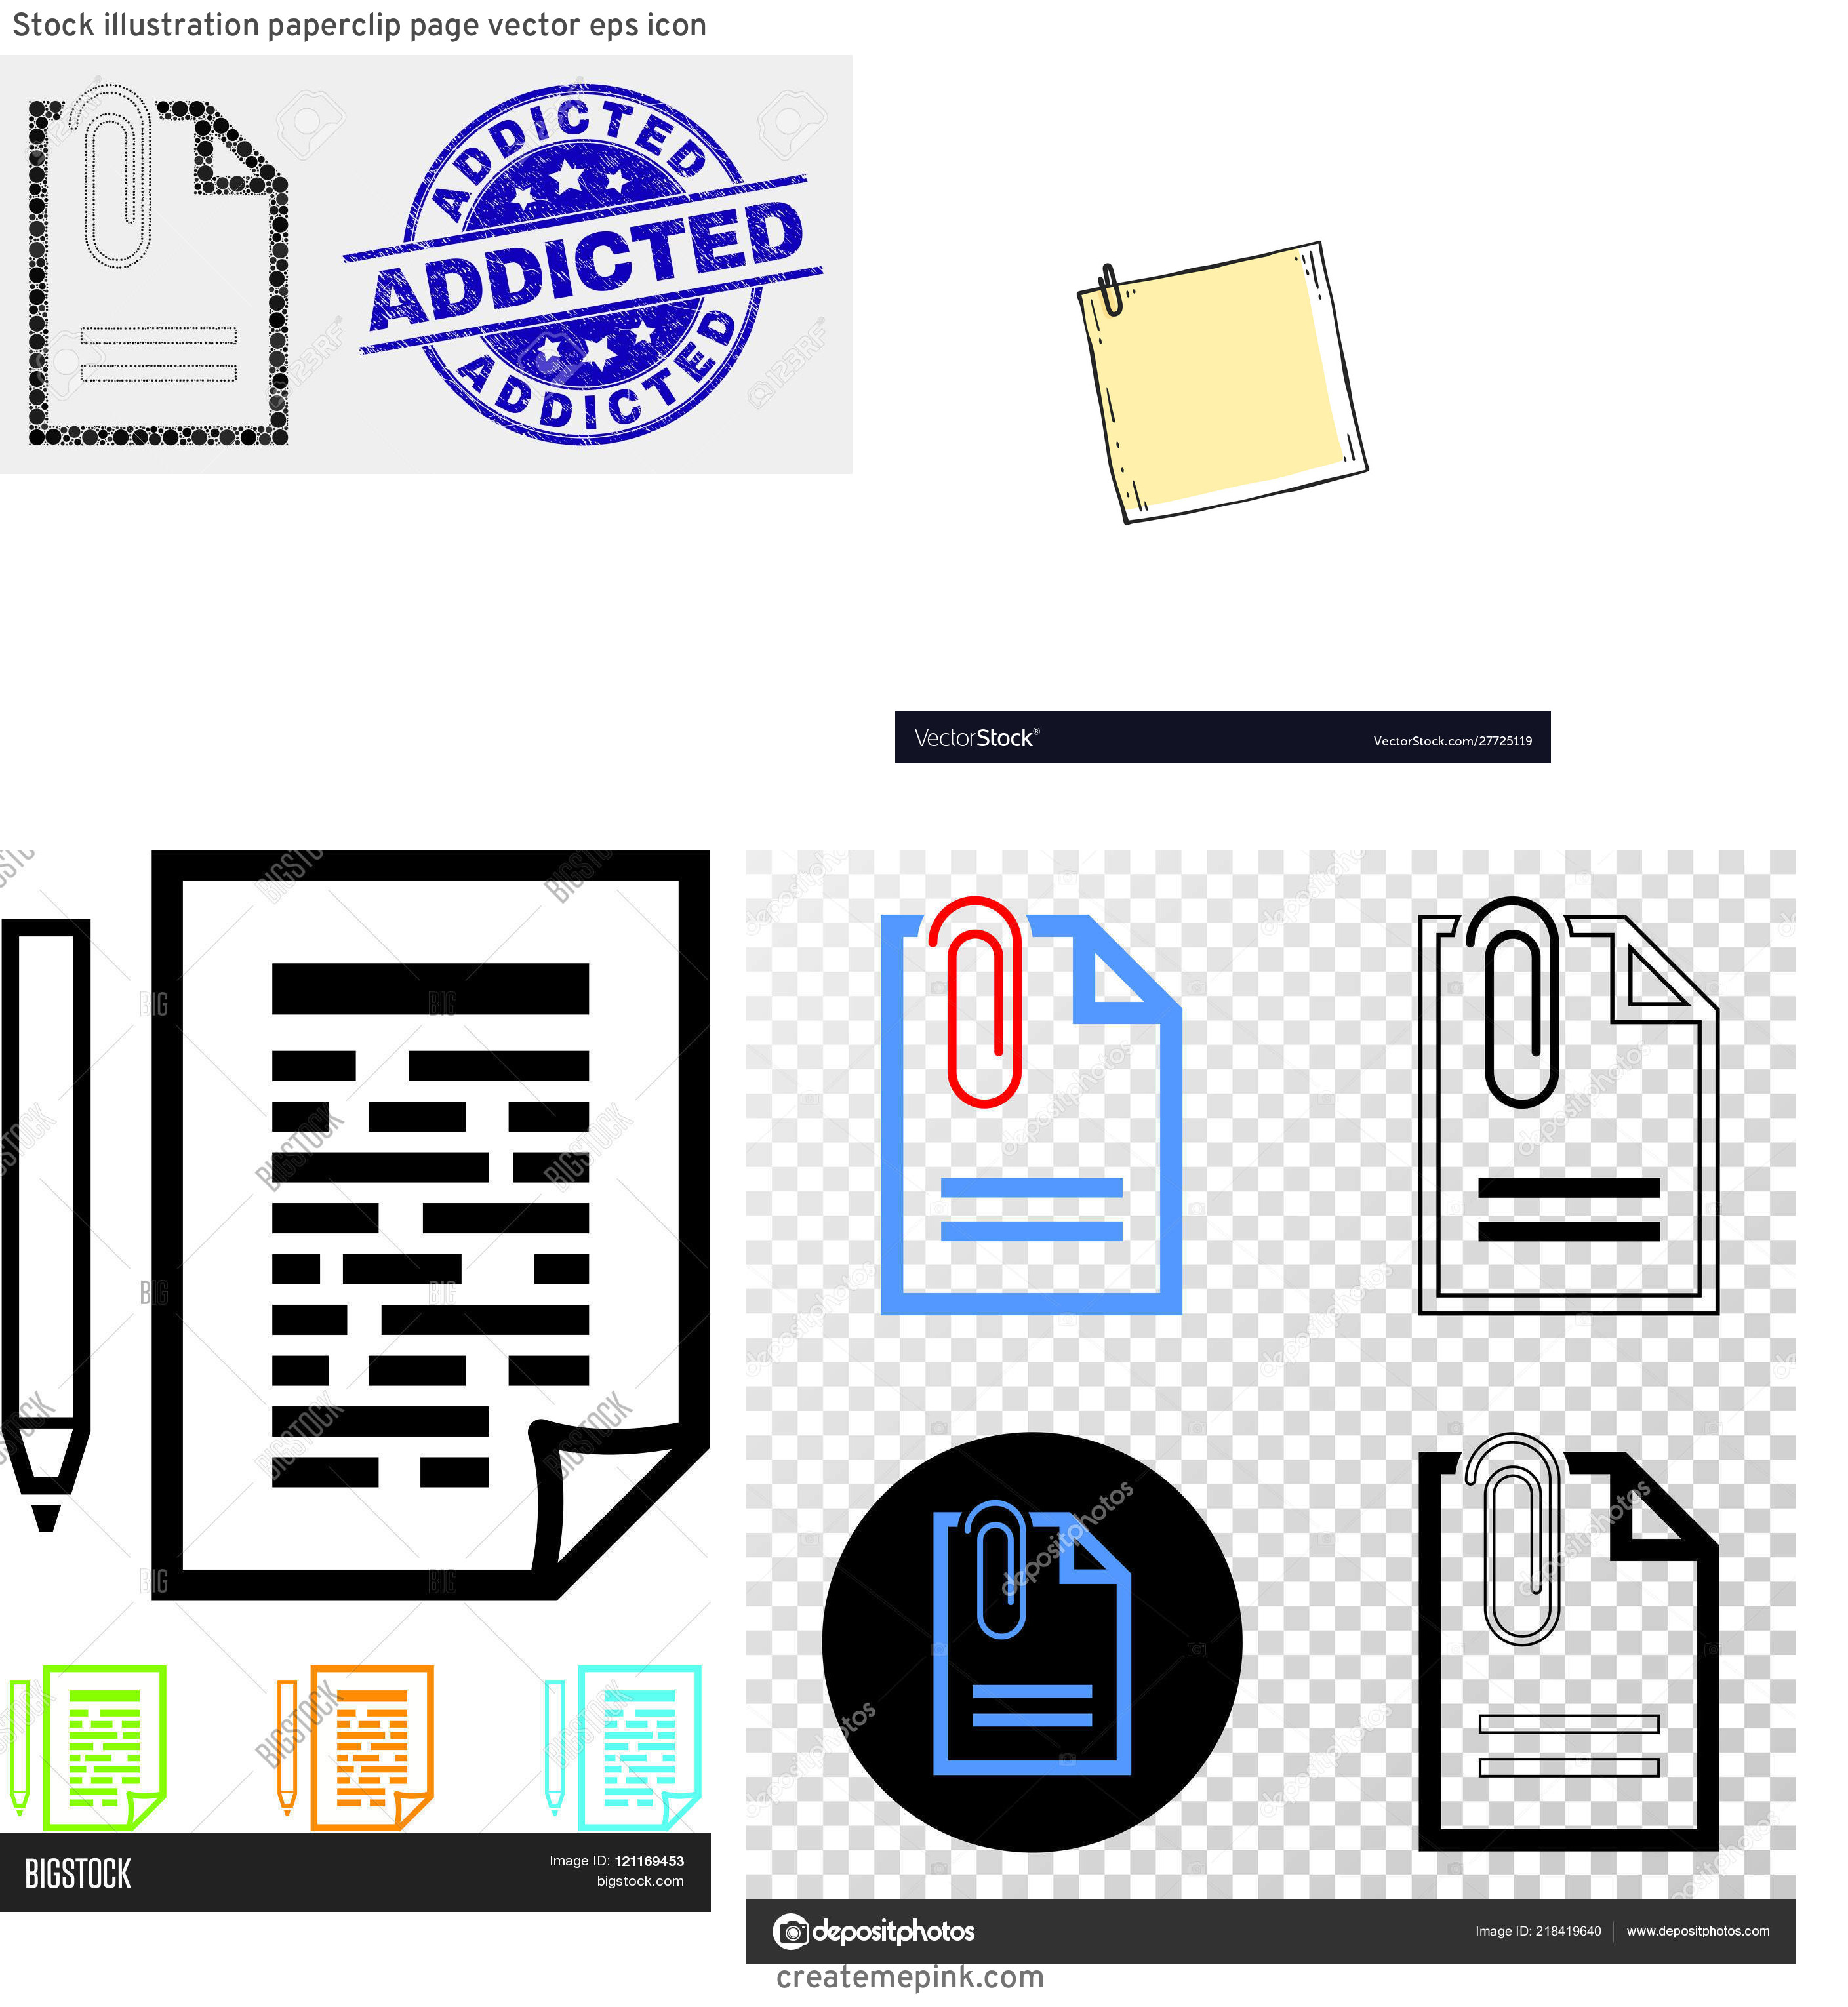 Vector Paper Clip On Page: Stock Illustration Paperclip Page Vector Eps Icon